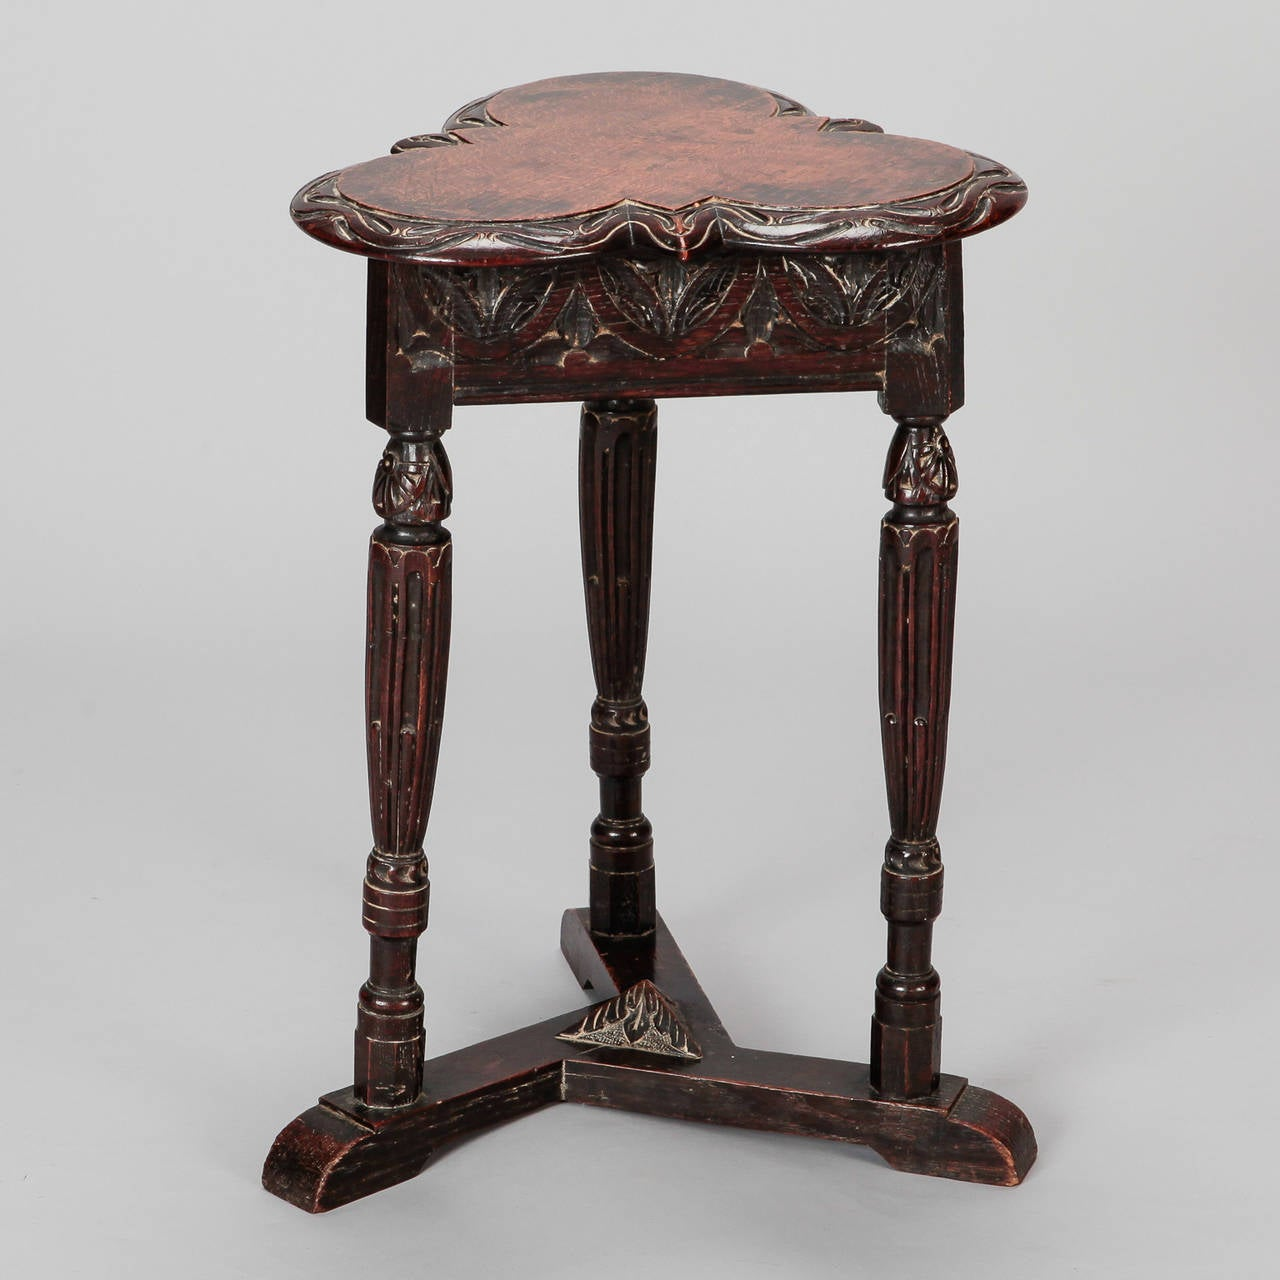 Side table has a trefoil shaped top with highly carved details on apron and turned legs, circa 1890s.